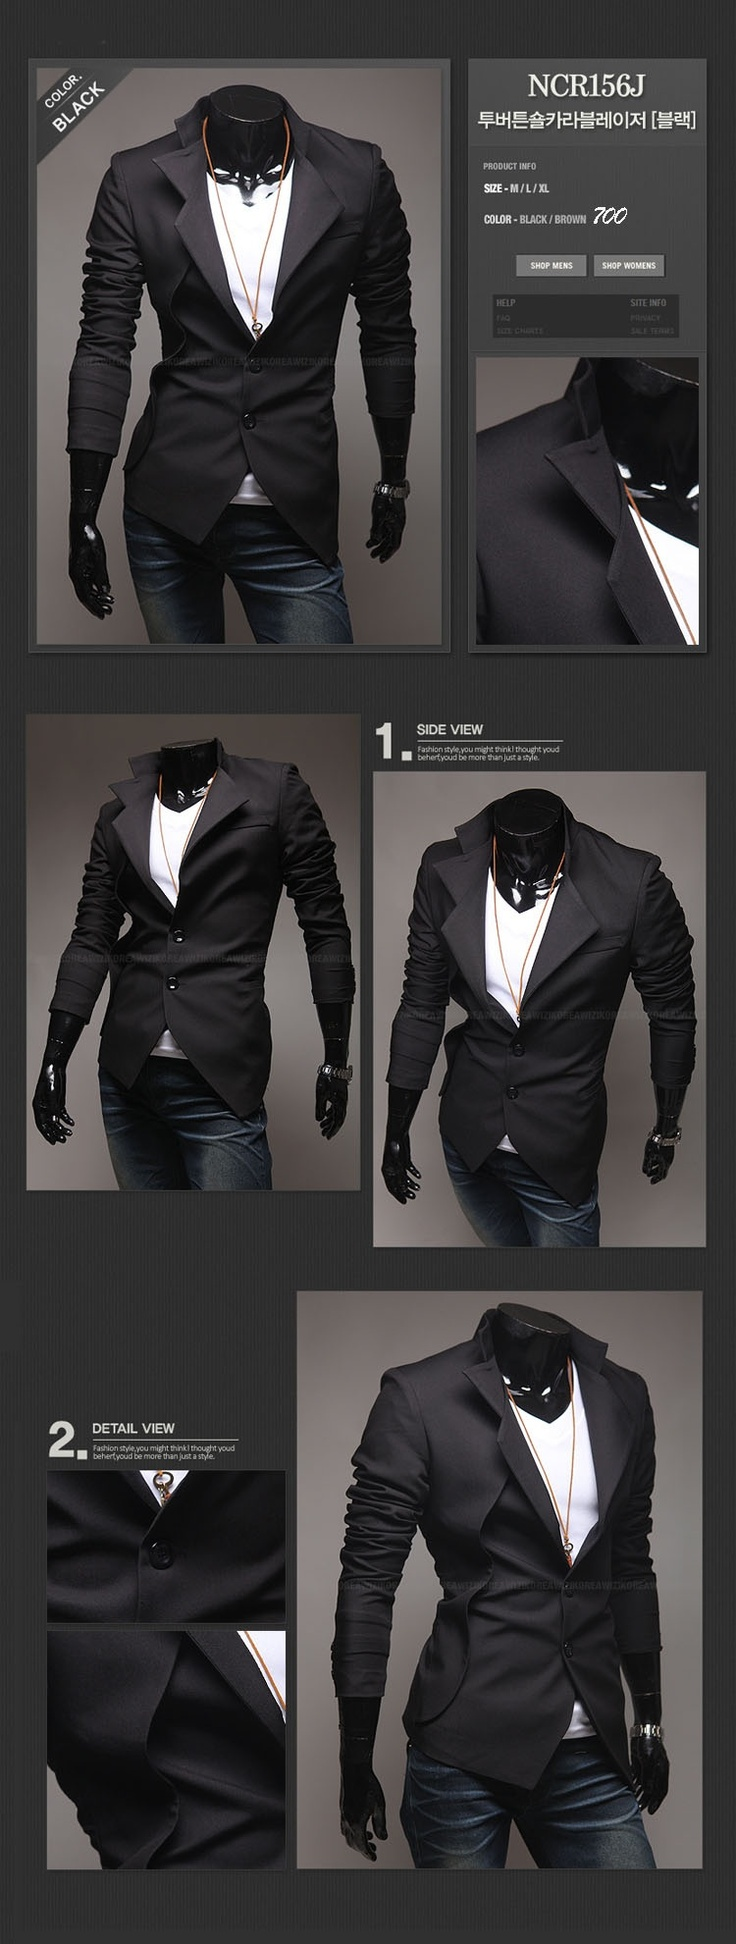 best boda images on pinterest men fashion jackets and knights